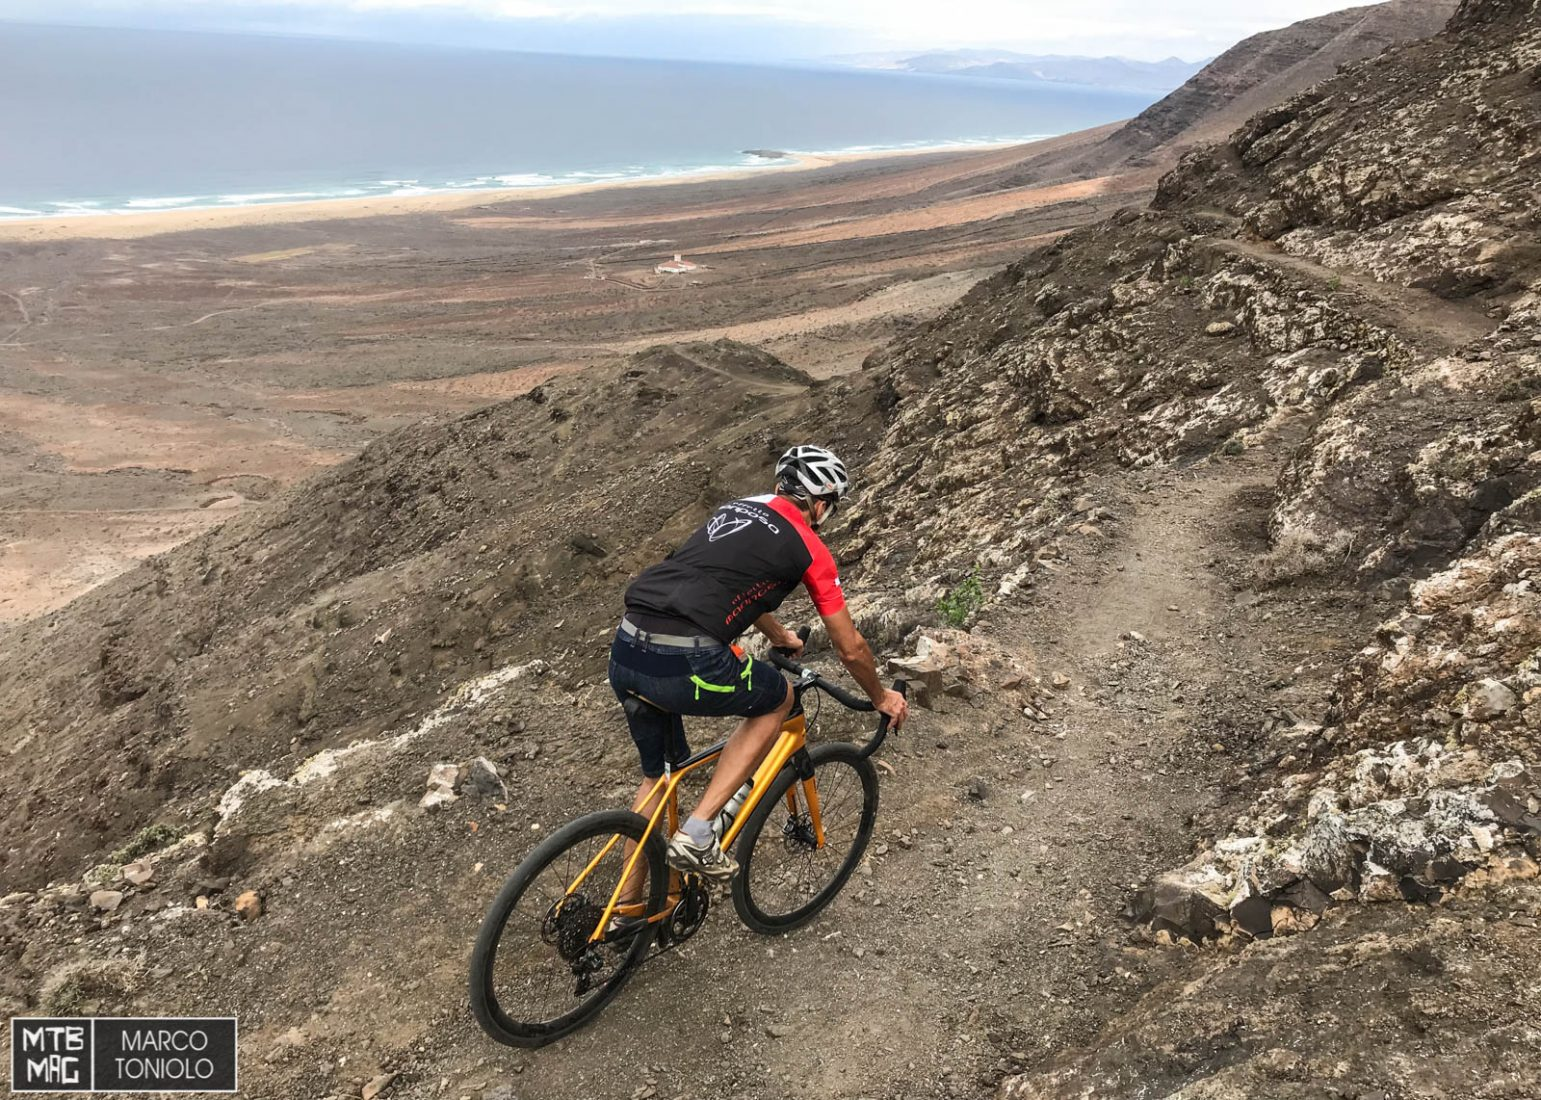 [Video] Fuerteventura Sud: oltre il Gravel